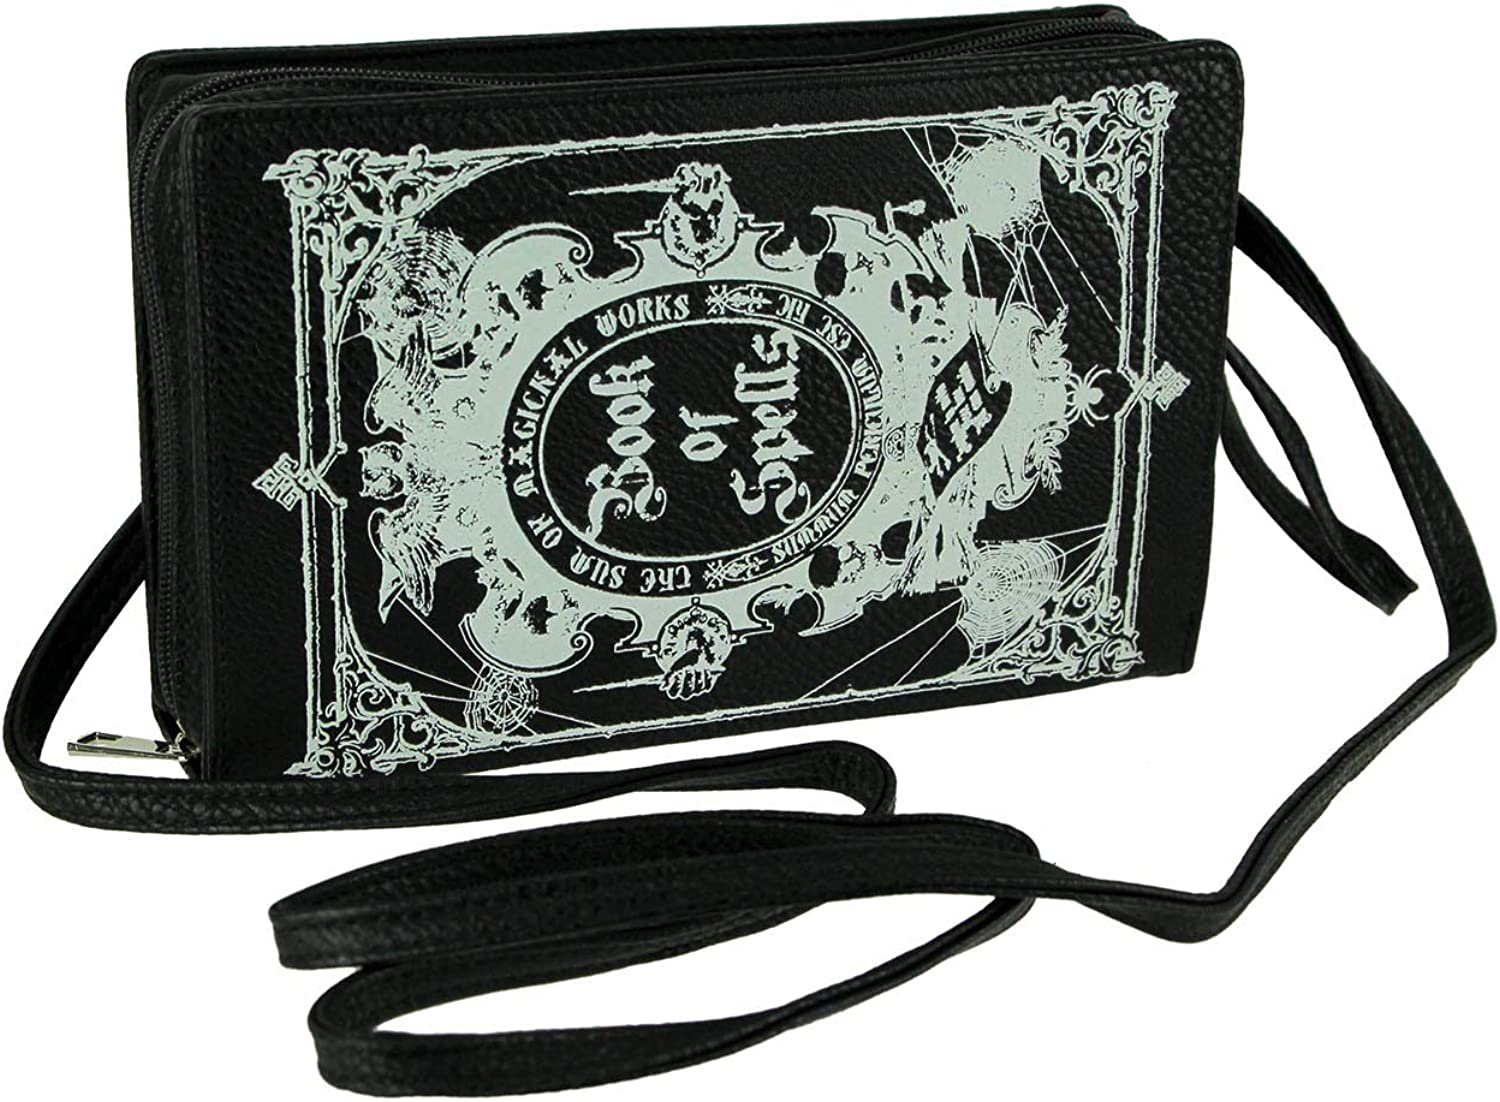 FREE SHIPPING Gothic Black Magical Spell Book Messenger Bag